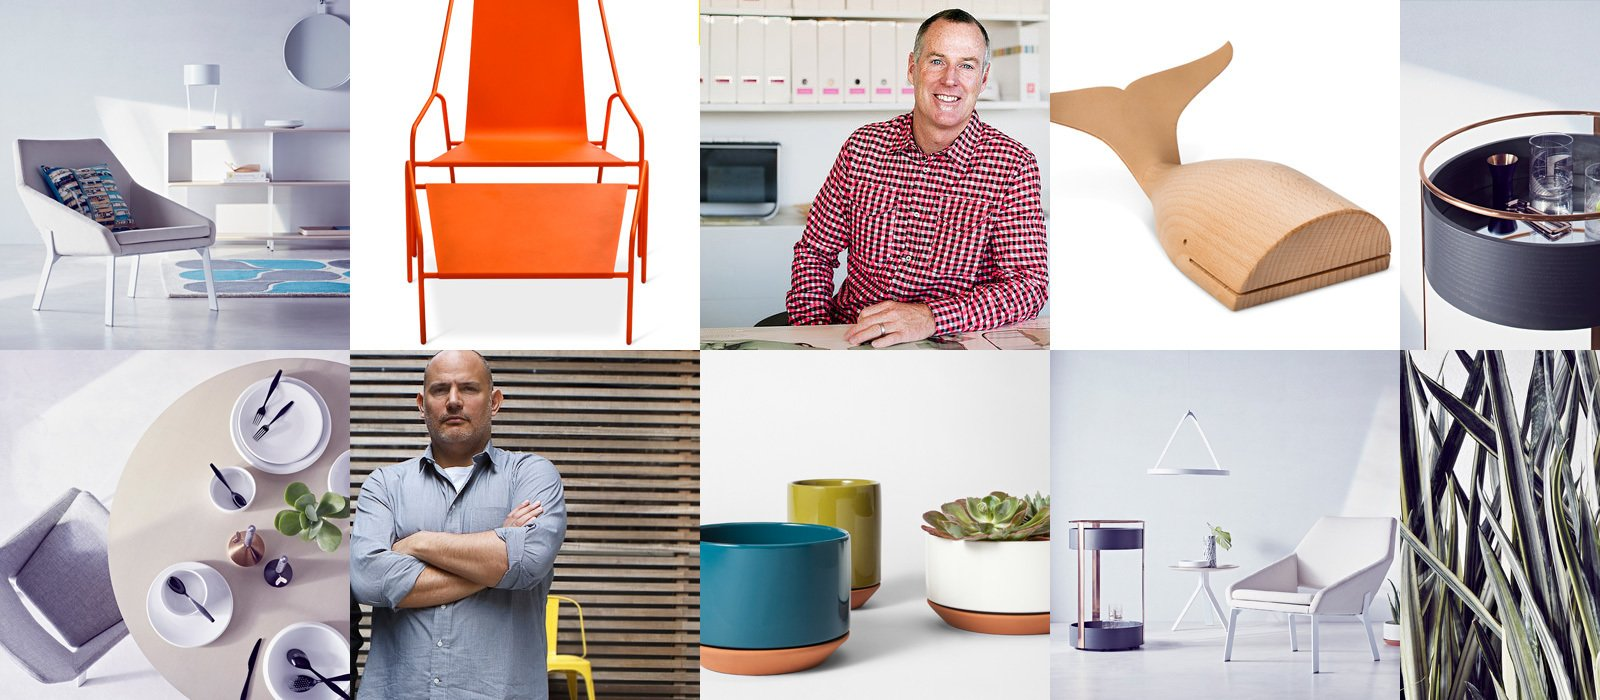 Photo 1 of 1 in Design Chat: A Live Q&A With Chris Deam and Nick Dine